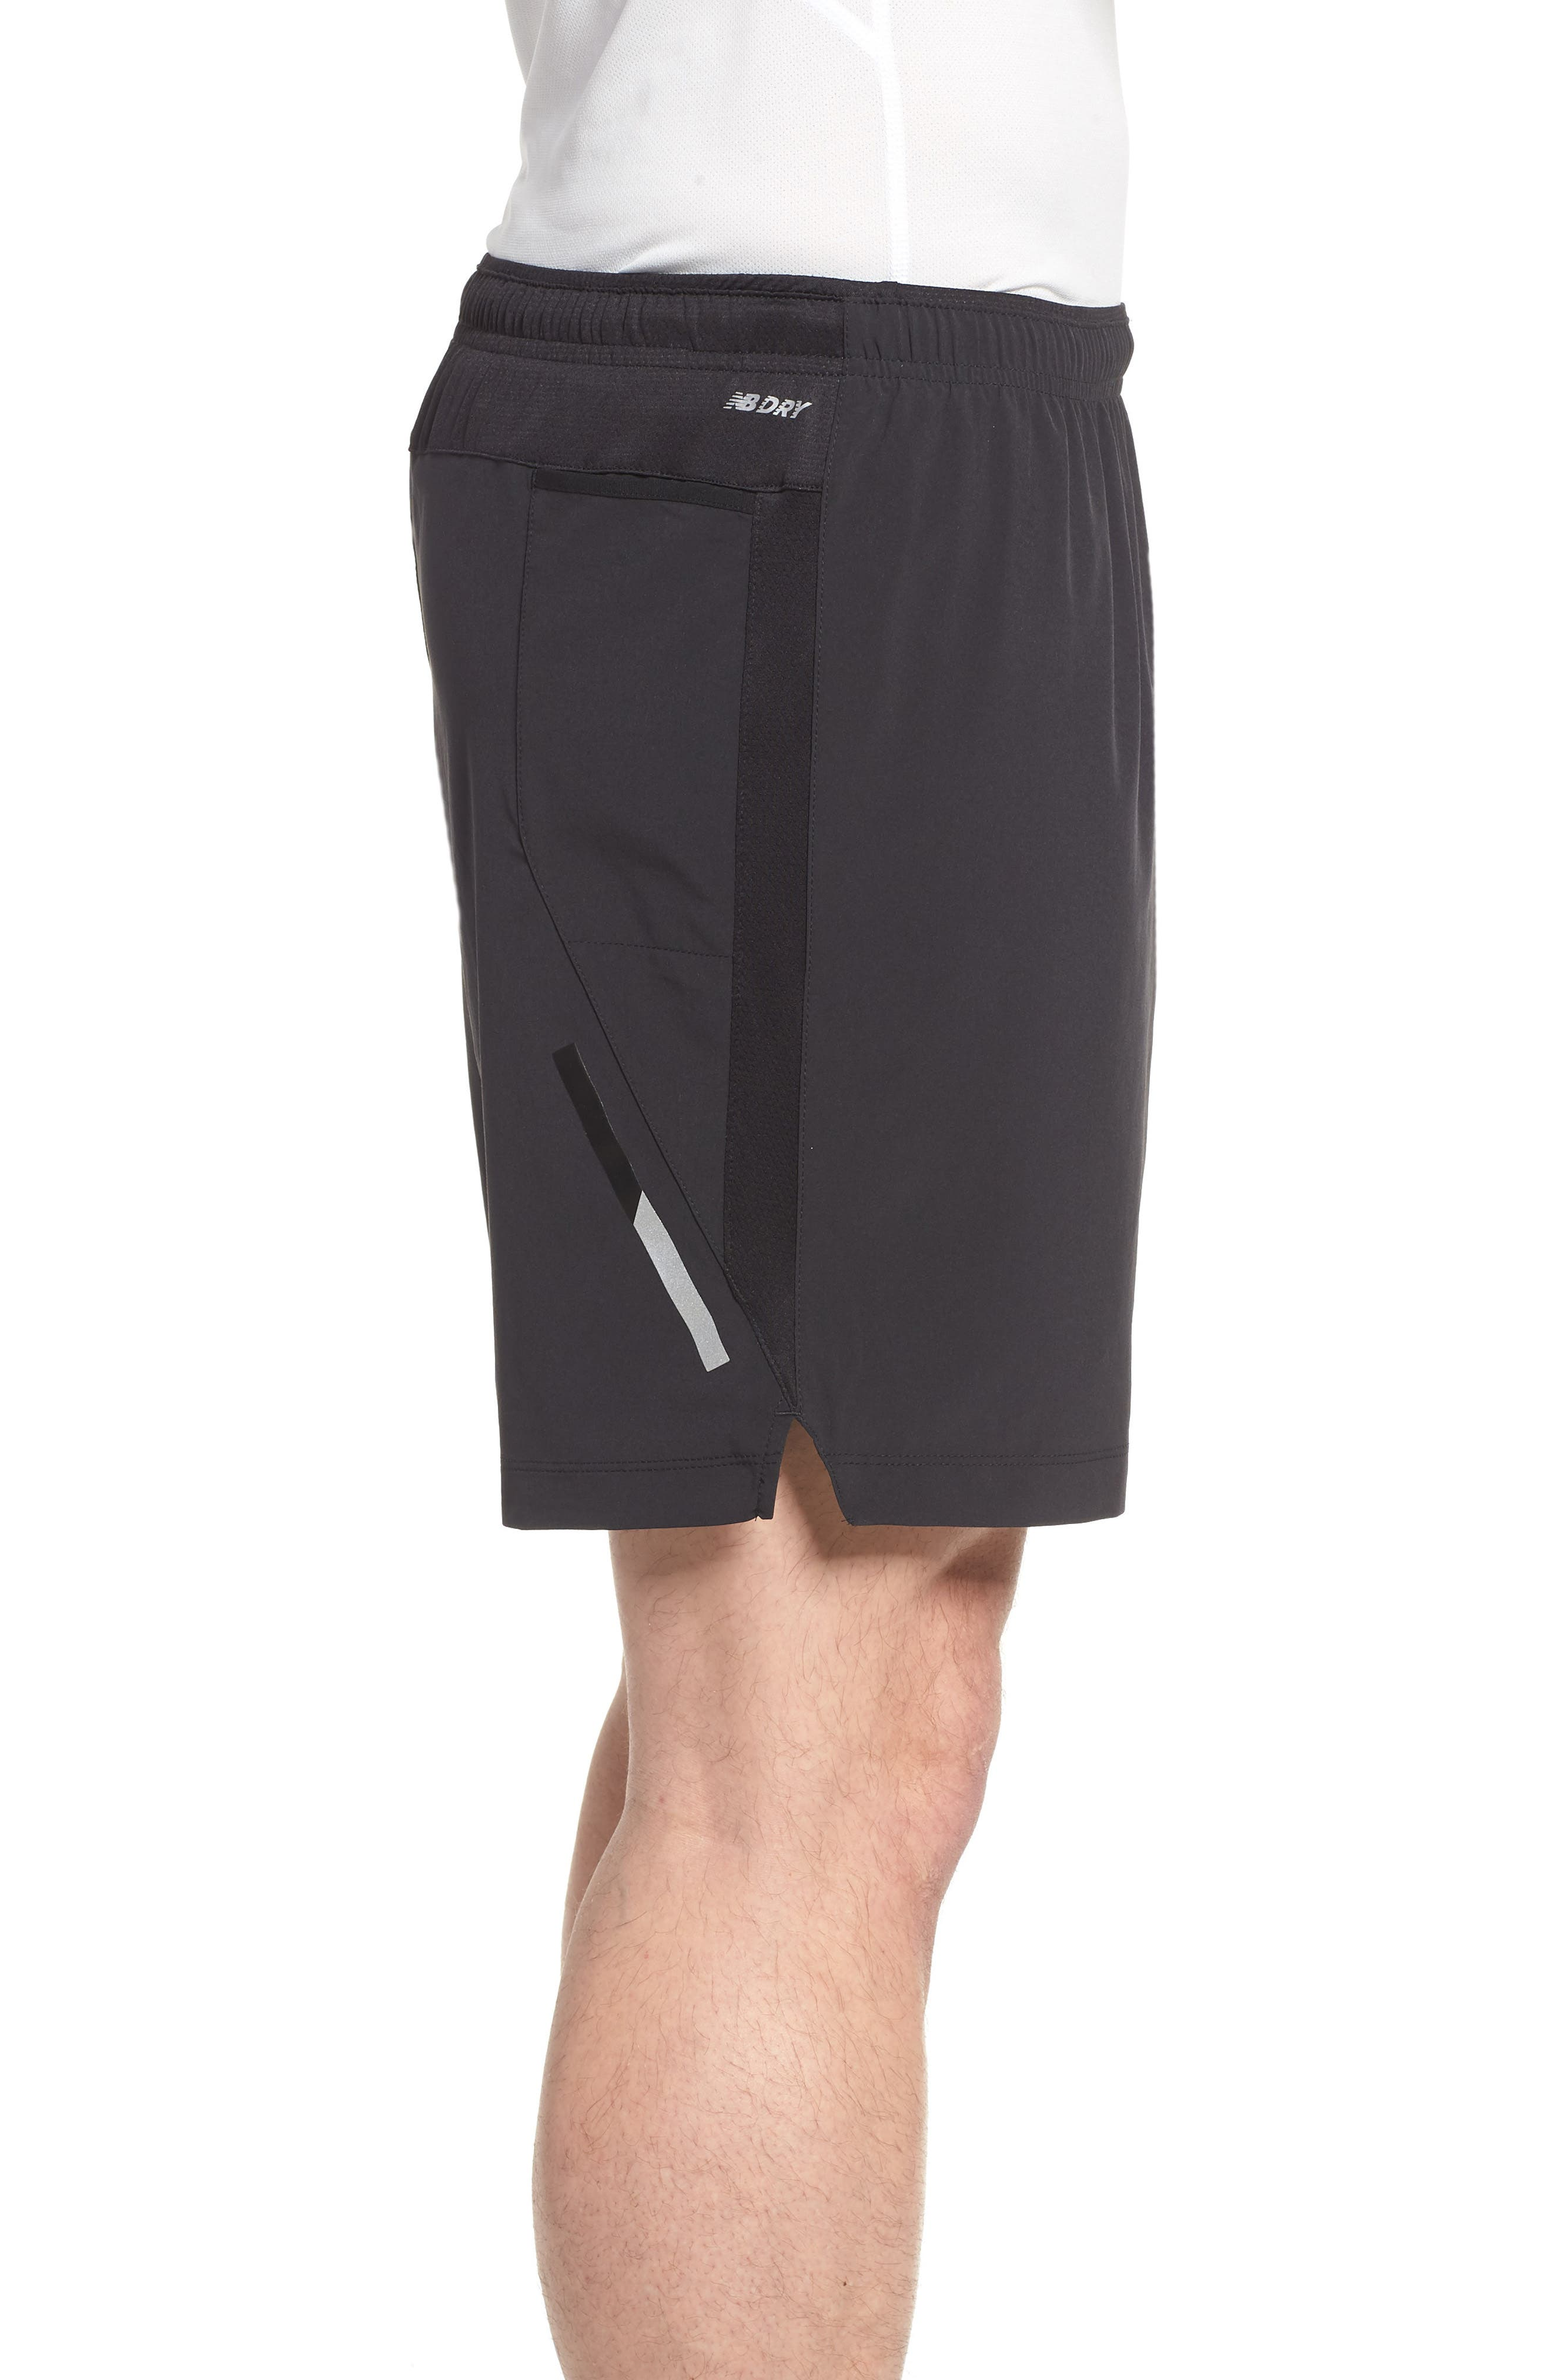 Impact Shorts,                             Alternate thumbnail 3, color,                             Black